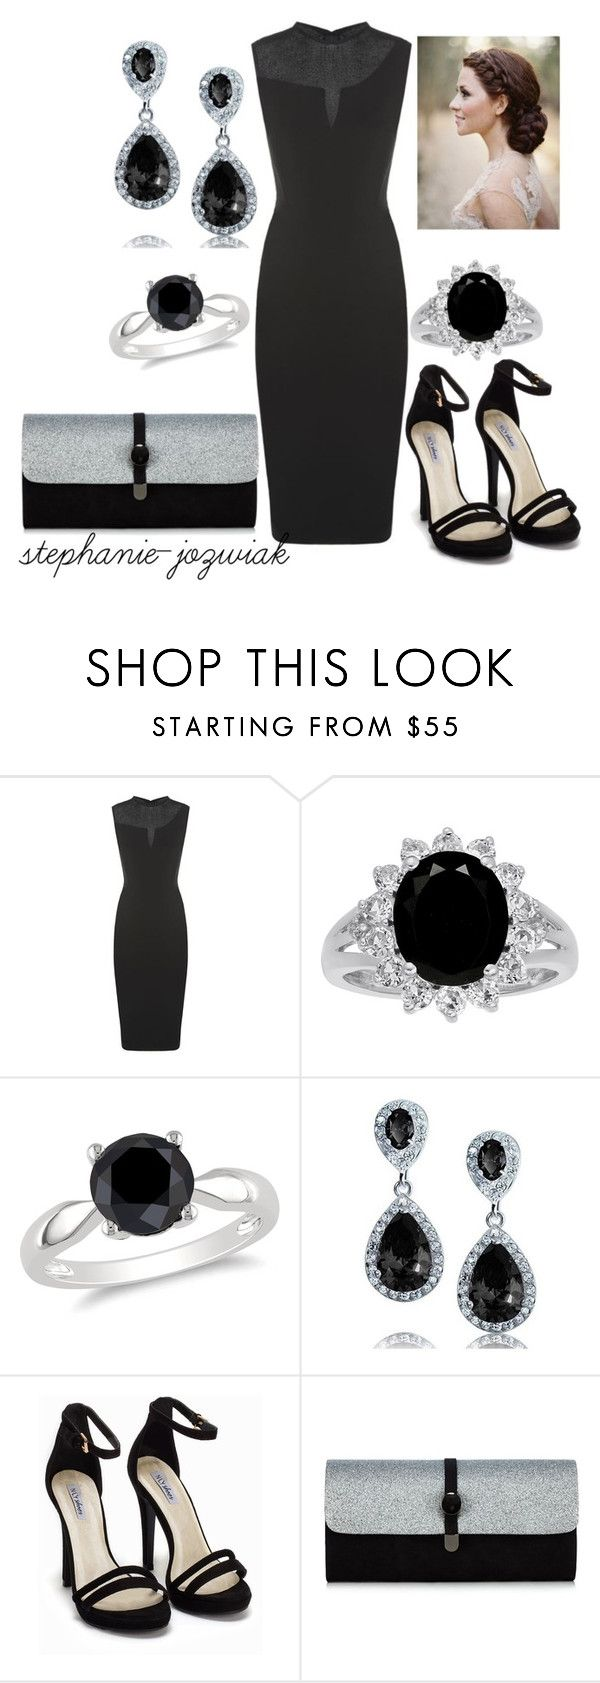 """""""Rhosyn's Dress for Kathrine's Funeral"""" by stephanie-jozwiak ❤ liked on Polyvore featuring Victoria Beckham, Ice, Bling Jewelry and Nly Shoes"""